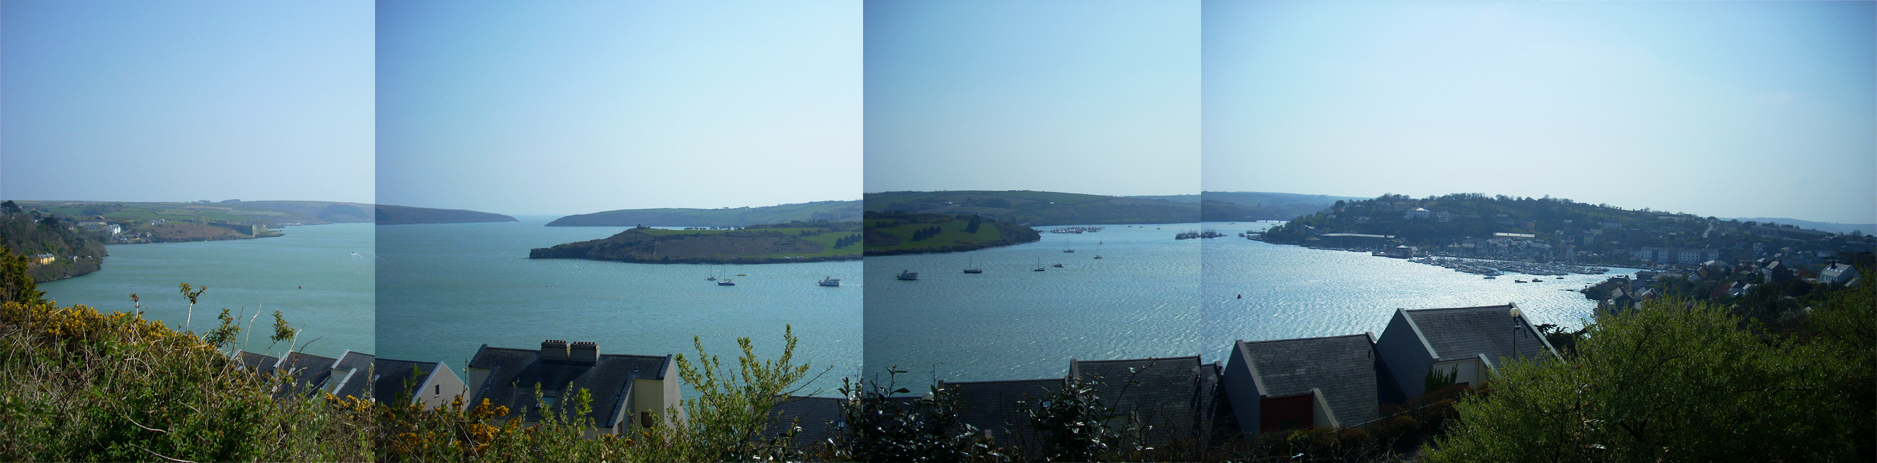 before I had a reliable panorama camera had to do this the old fashioned way, view in Kinsale